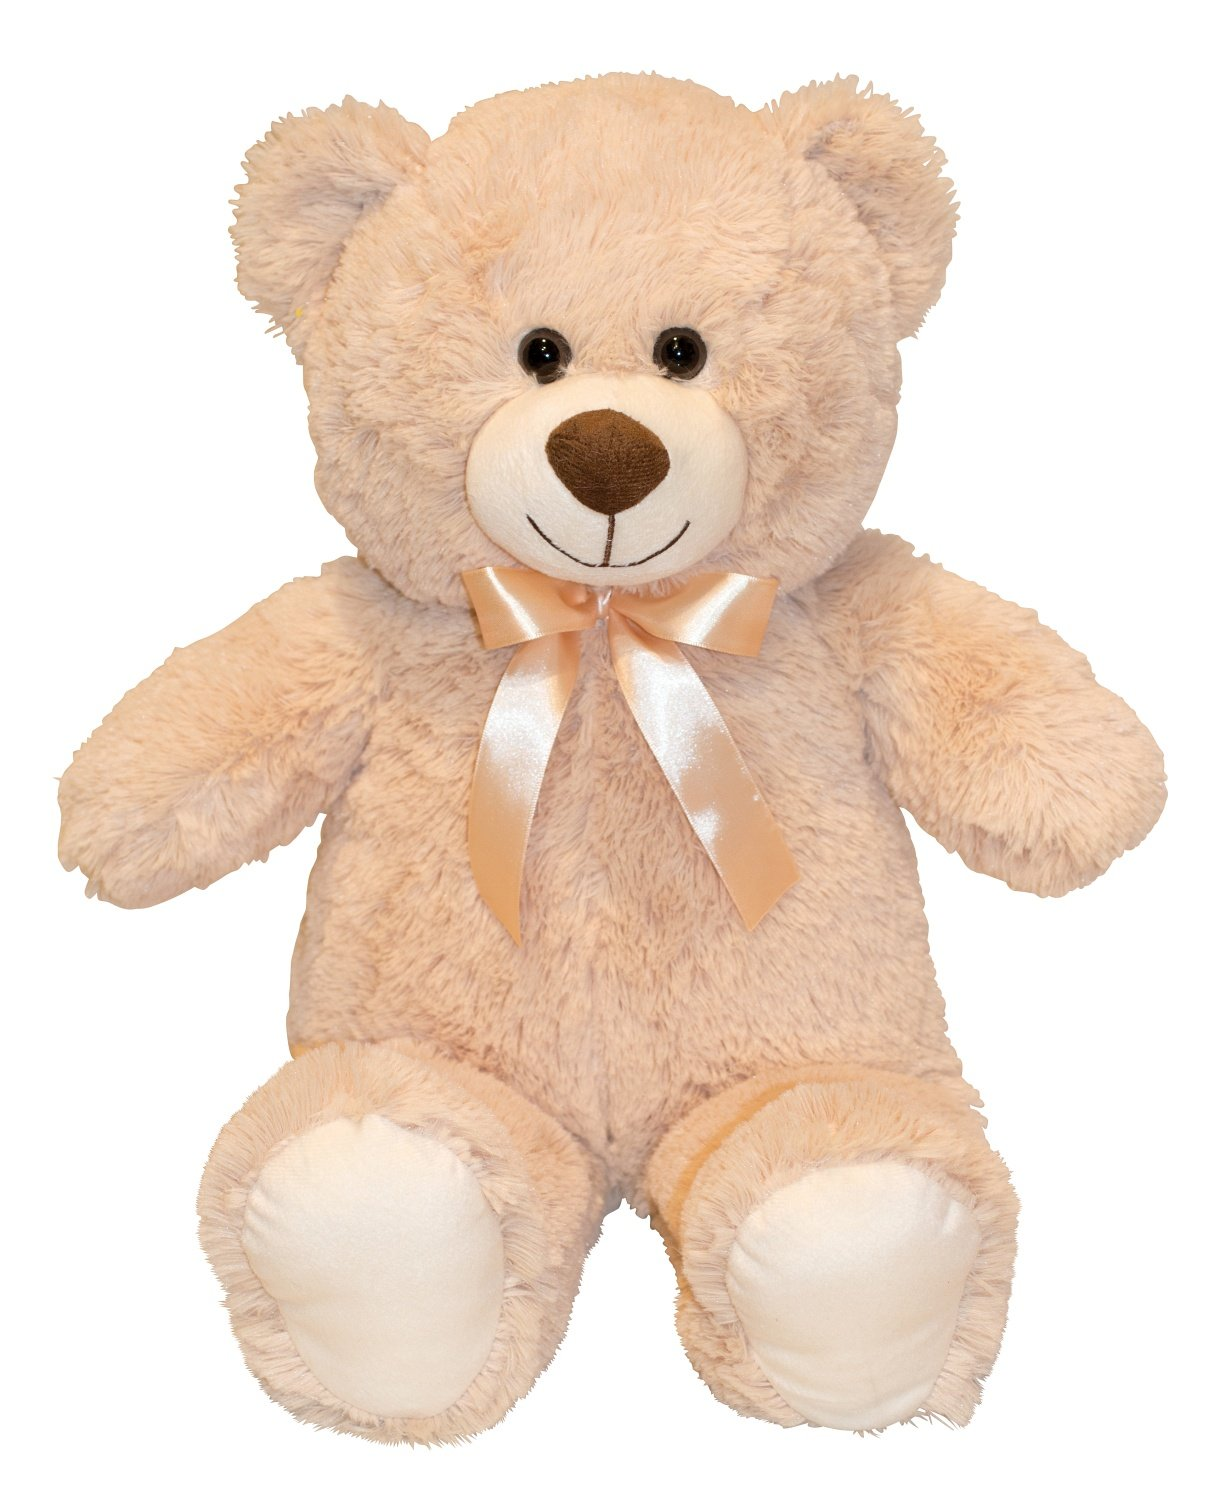 Giant Teddy Bear coccolo XL 60 cm di altezza peluche vellutato peluche morbido - per amore Lifestyle & More